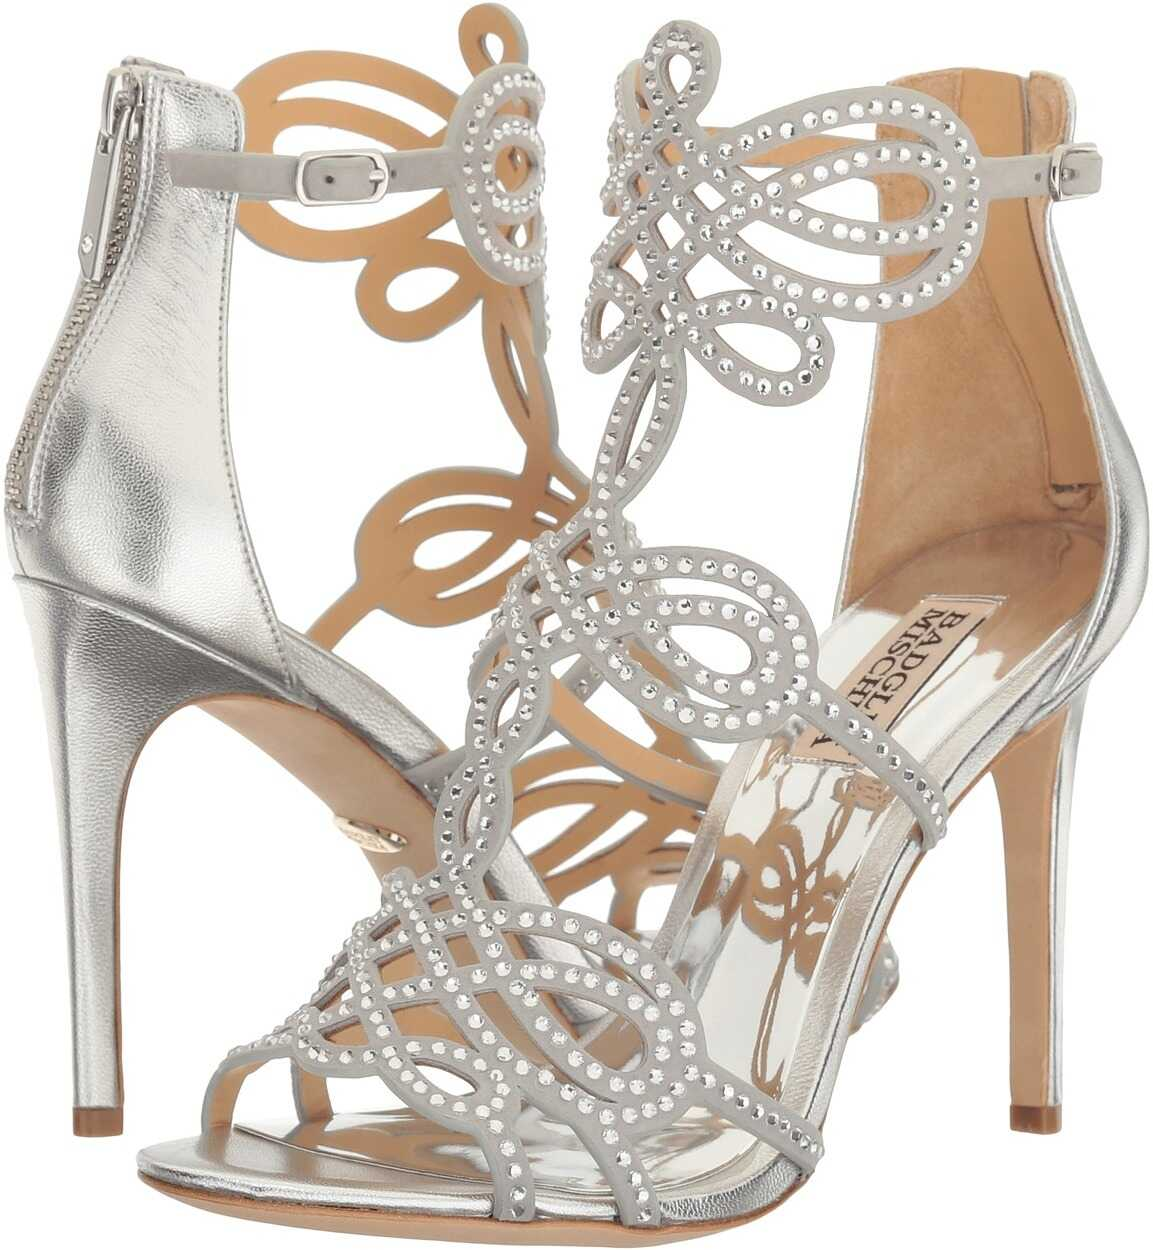 Badgley Mischka Teri Silver Metallic Suede